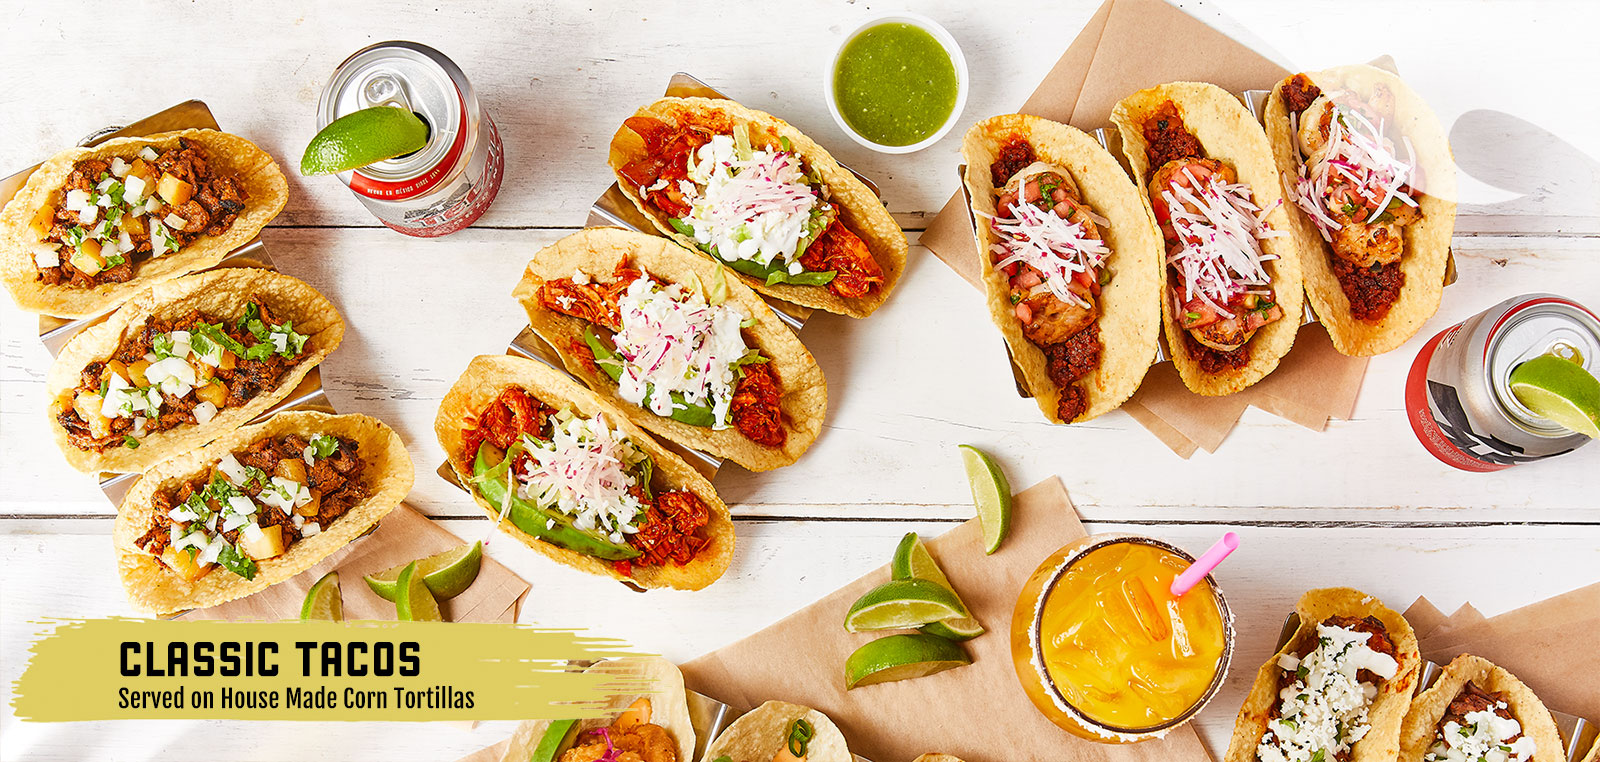 Classic Tacos, served on House Made Corn Tortillas